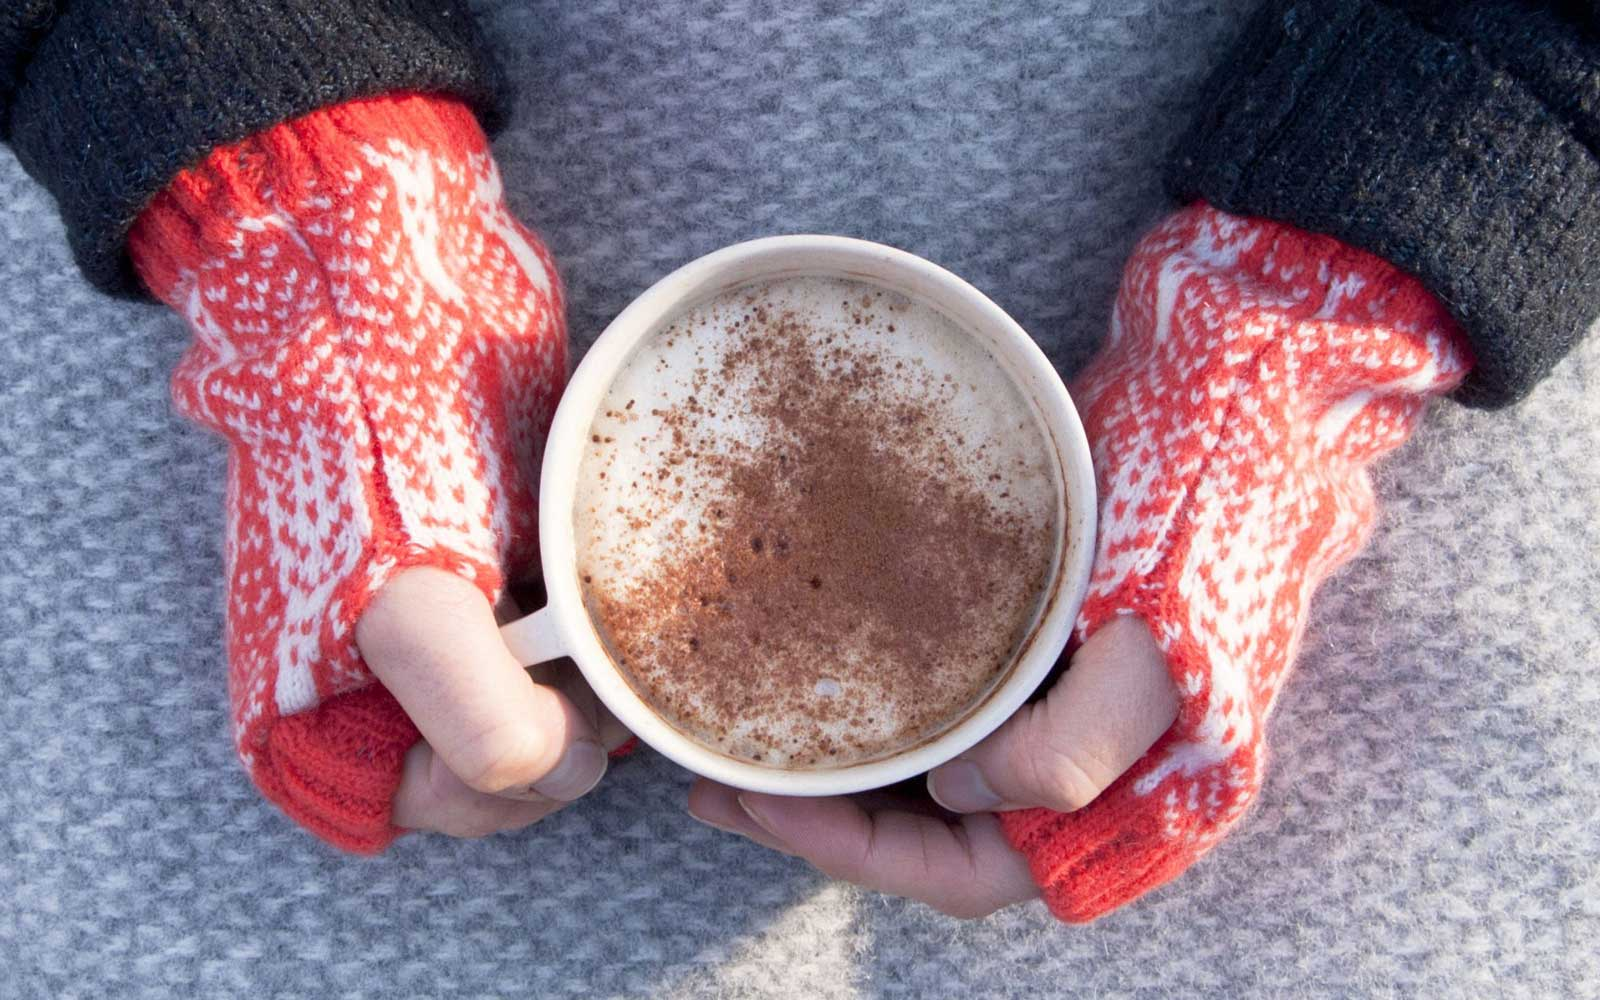 Hands with fingerless gloves wrapped around a cup of hot cocoa